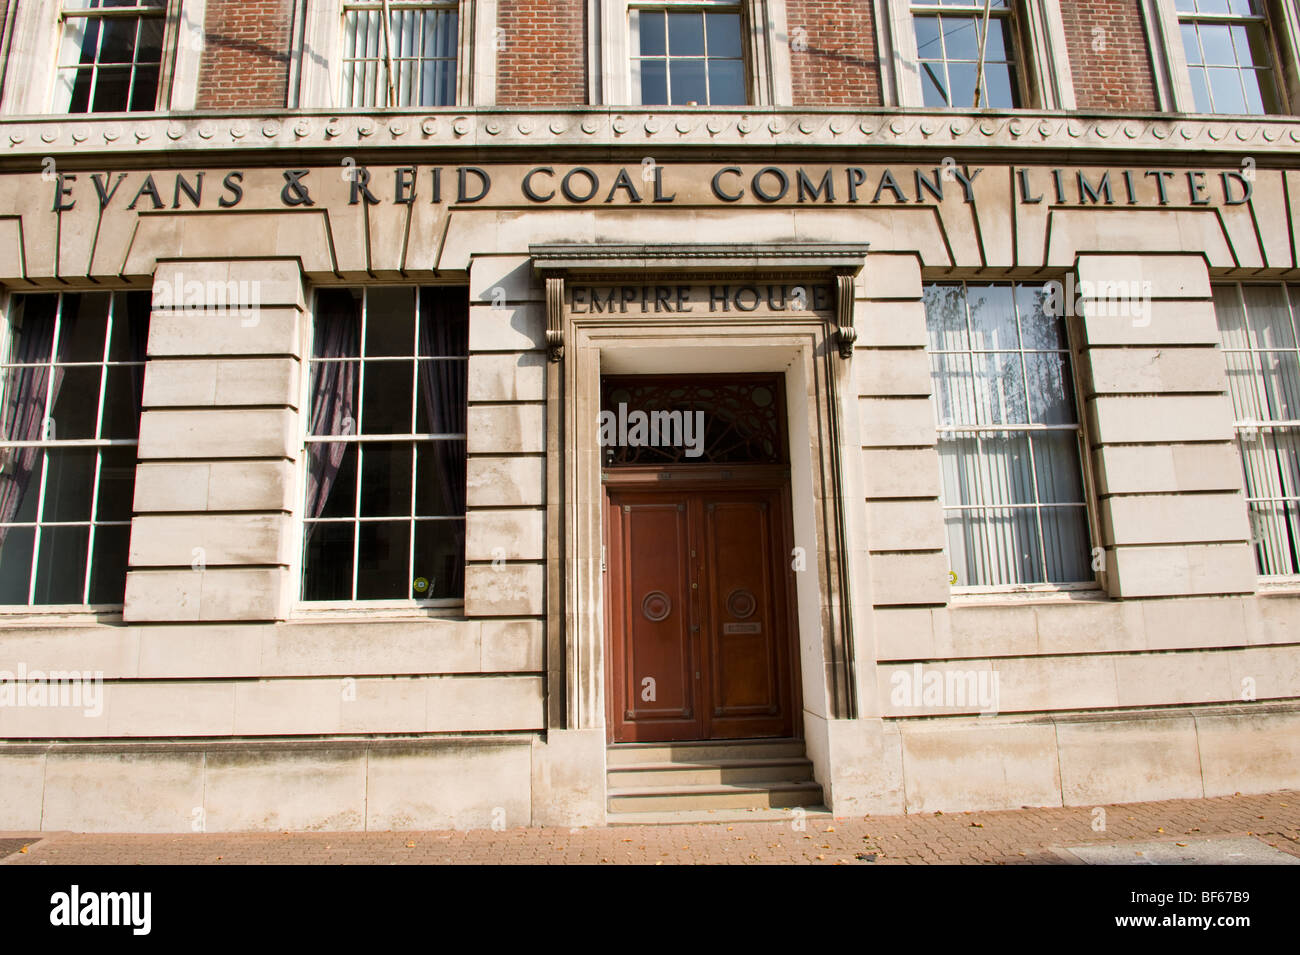 evans and reid coal company limited founded in 1922 empire house